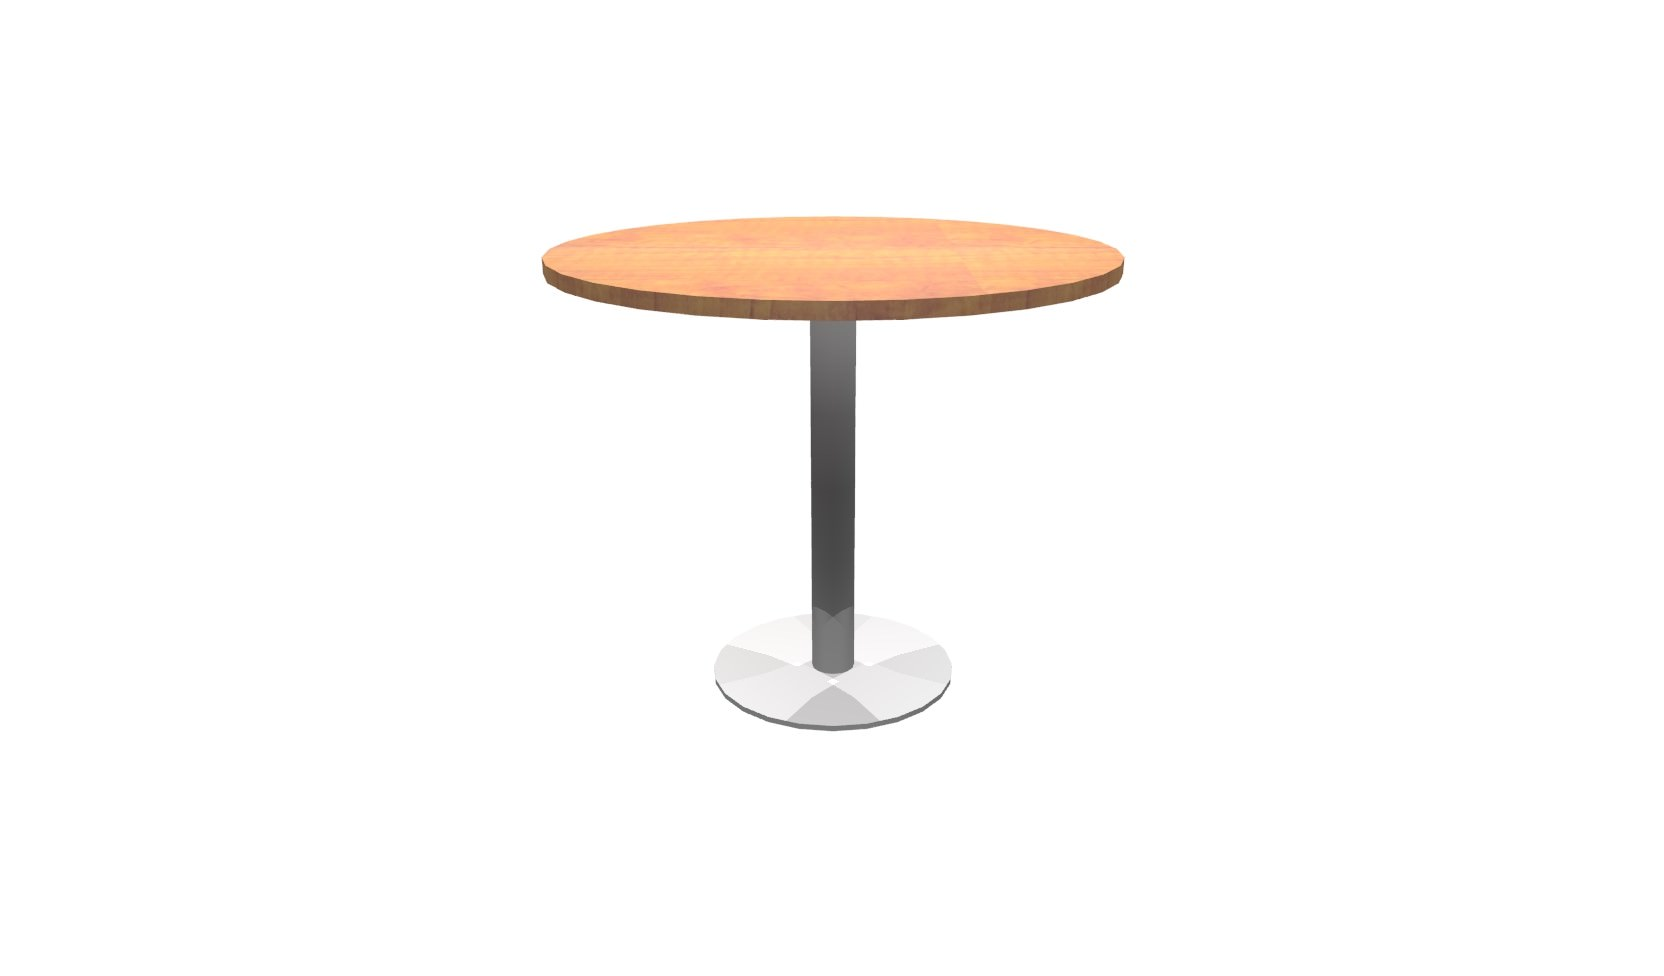 36 Inch Round Conference Table   (Honey / Brushed Metal)